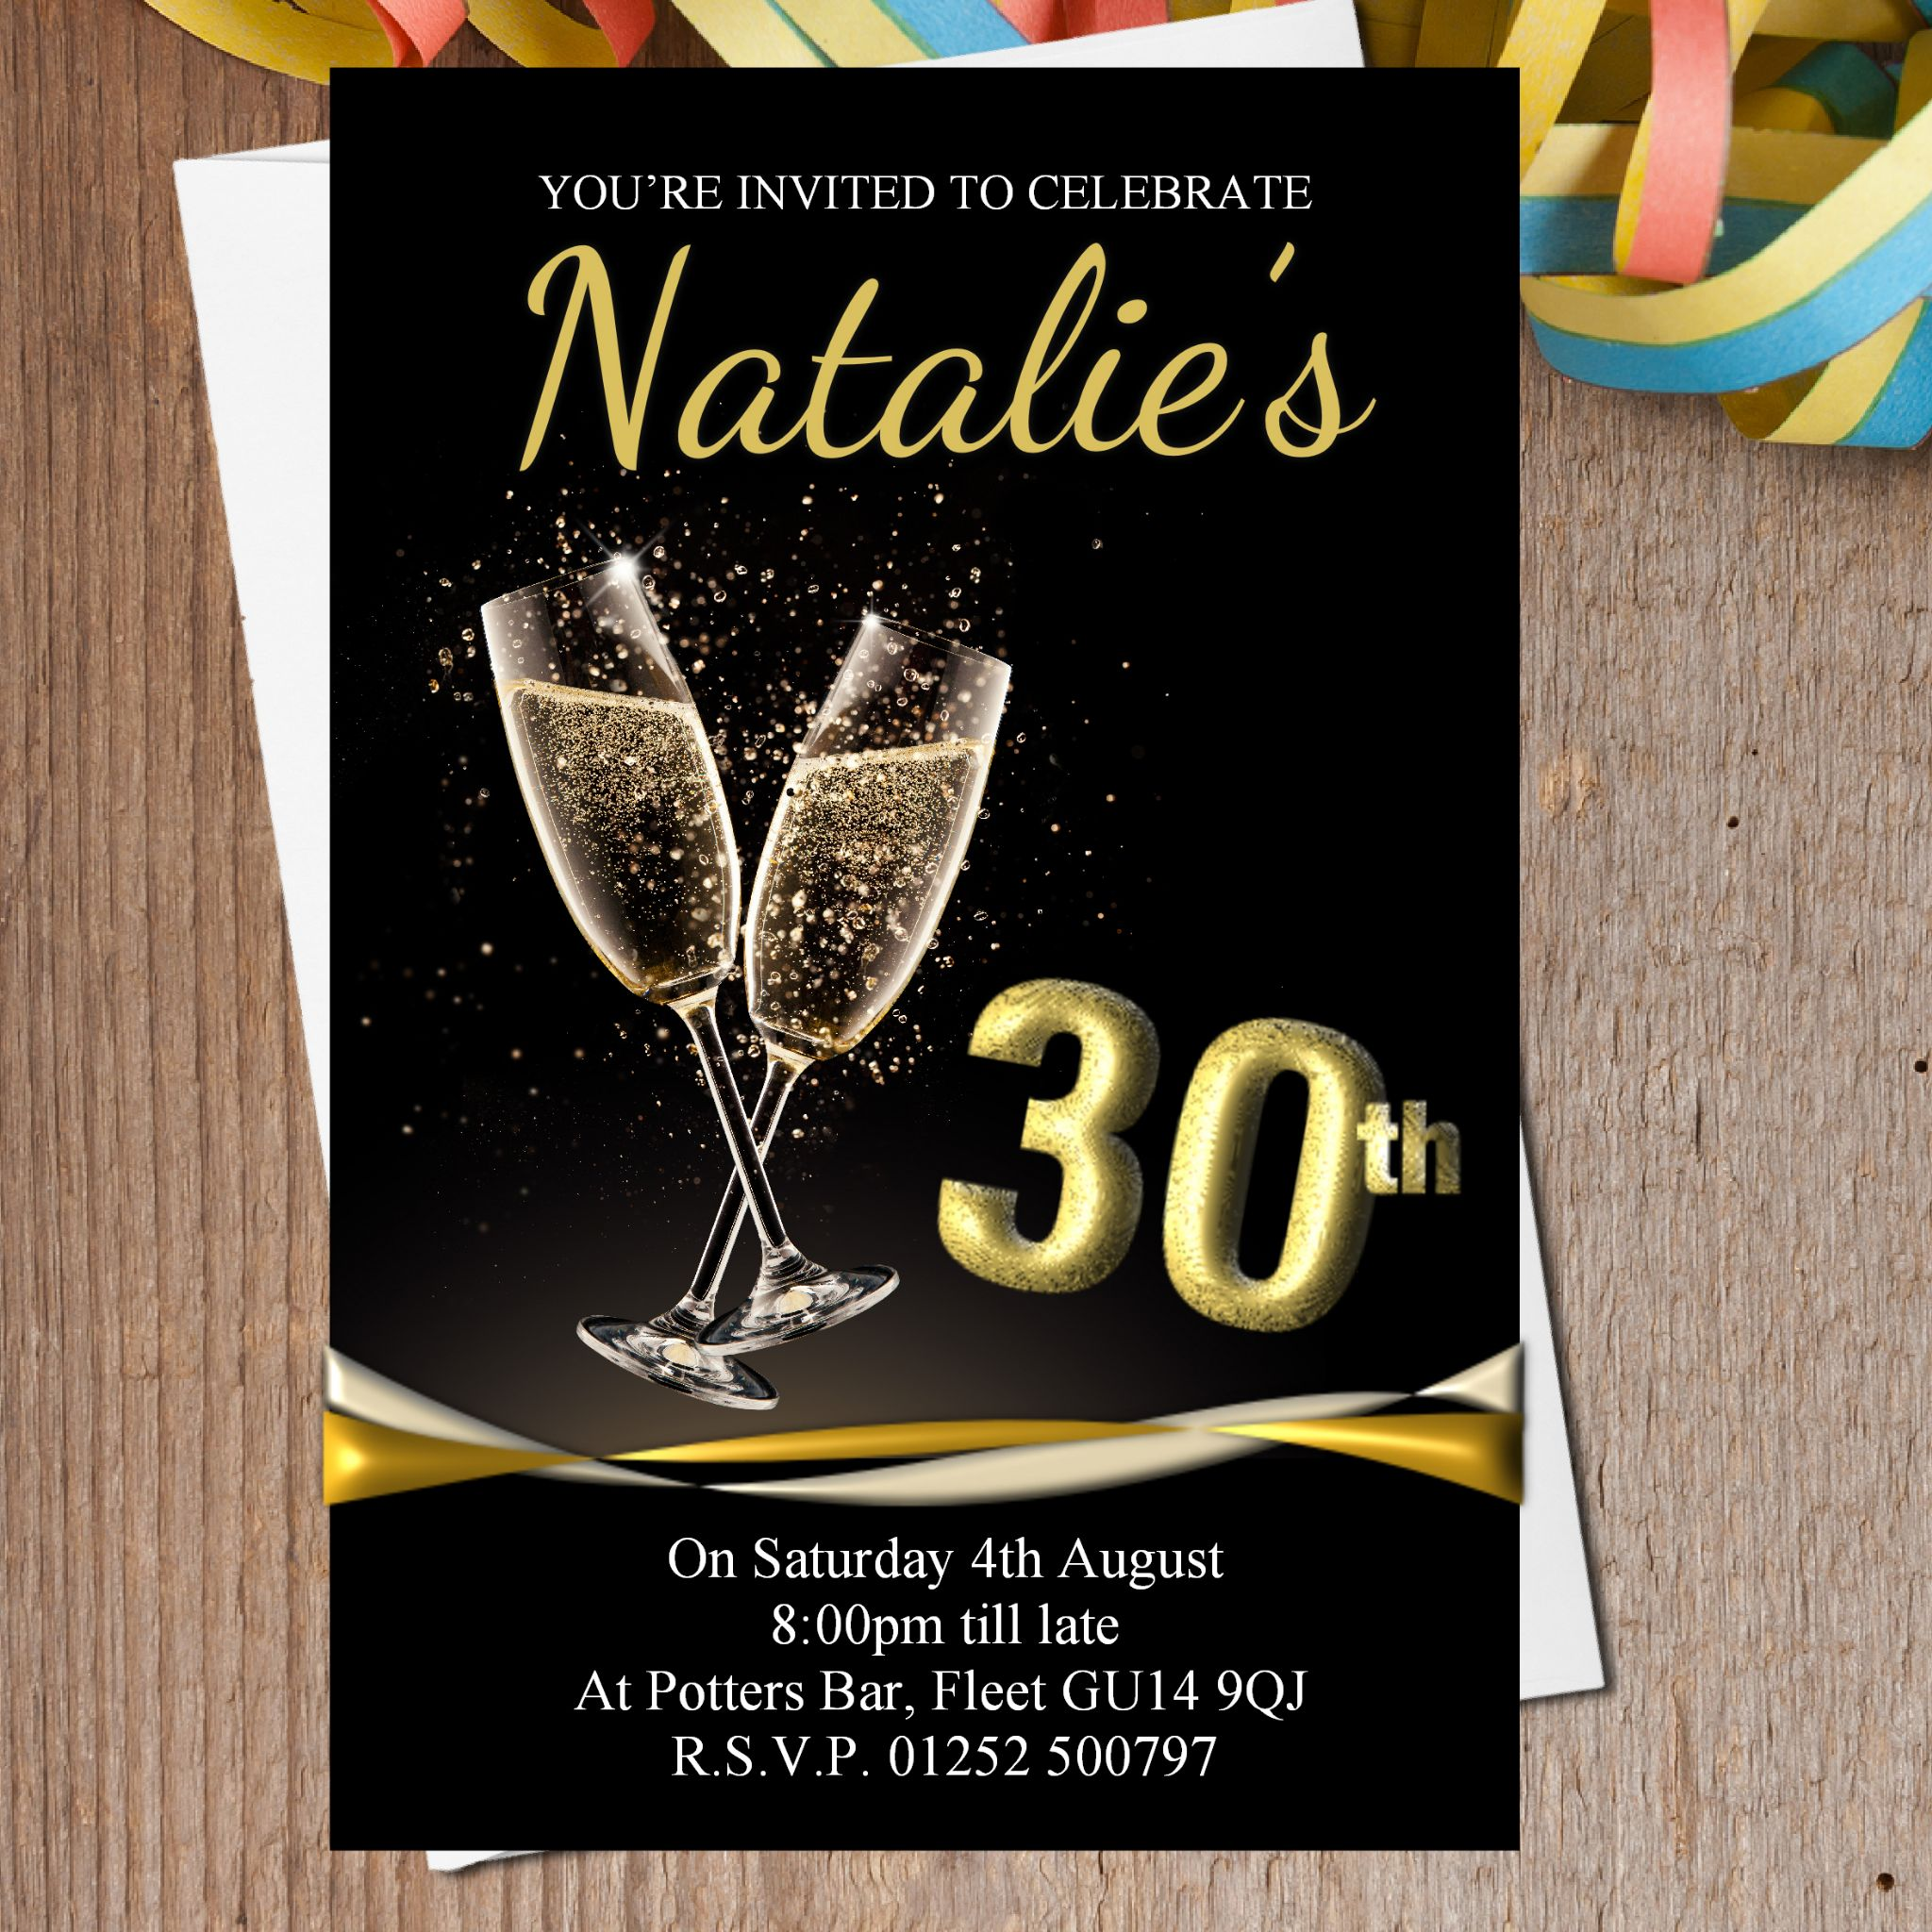 10 Personalised Black & Gold Champagne Birthday Party Invitations ...